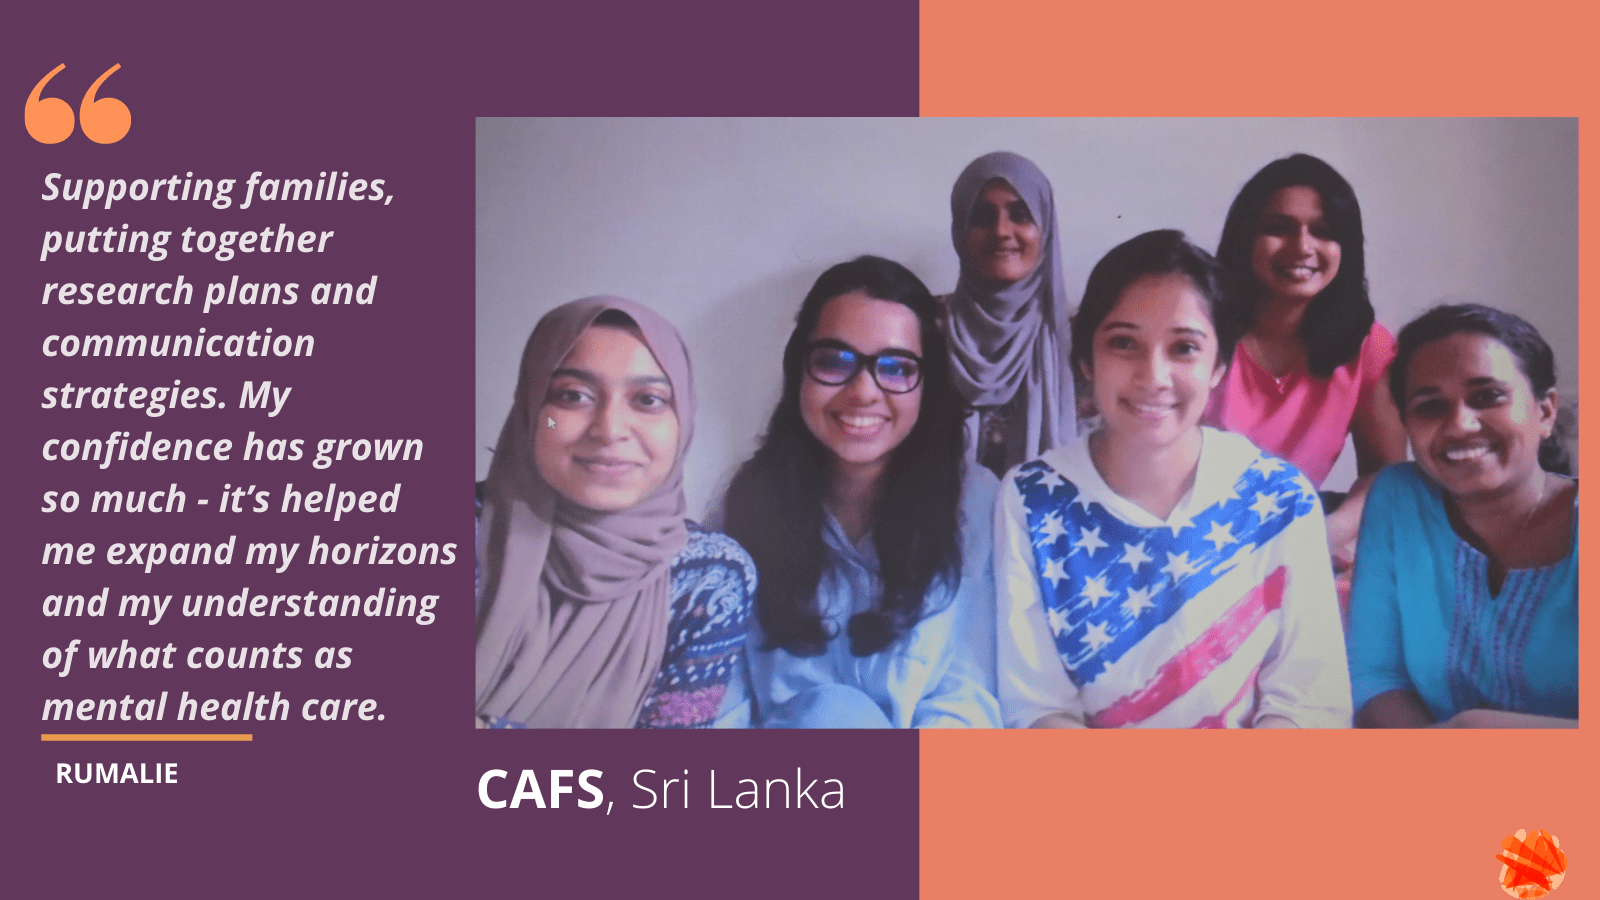 Portrait of the CAFS team: Four young Sri Lankan women are sitting next to each other smiling at the camera wearing colourful t-shirts. Quote reads: Supporting families, putting together research plans and communication strategies. My confidence has grown so much - it's helped me expand my horizons and my understanding of what counts as mental health care.